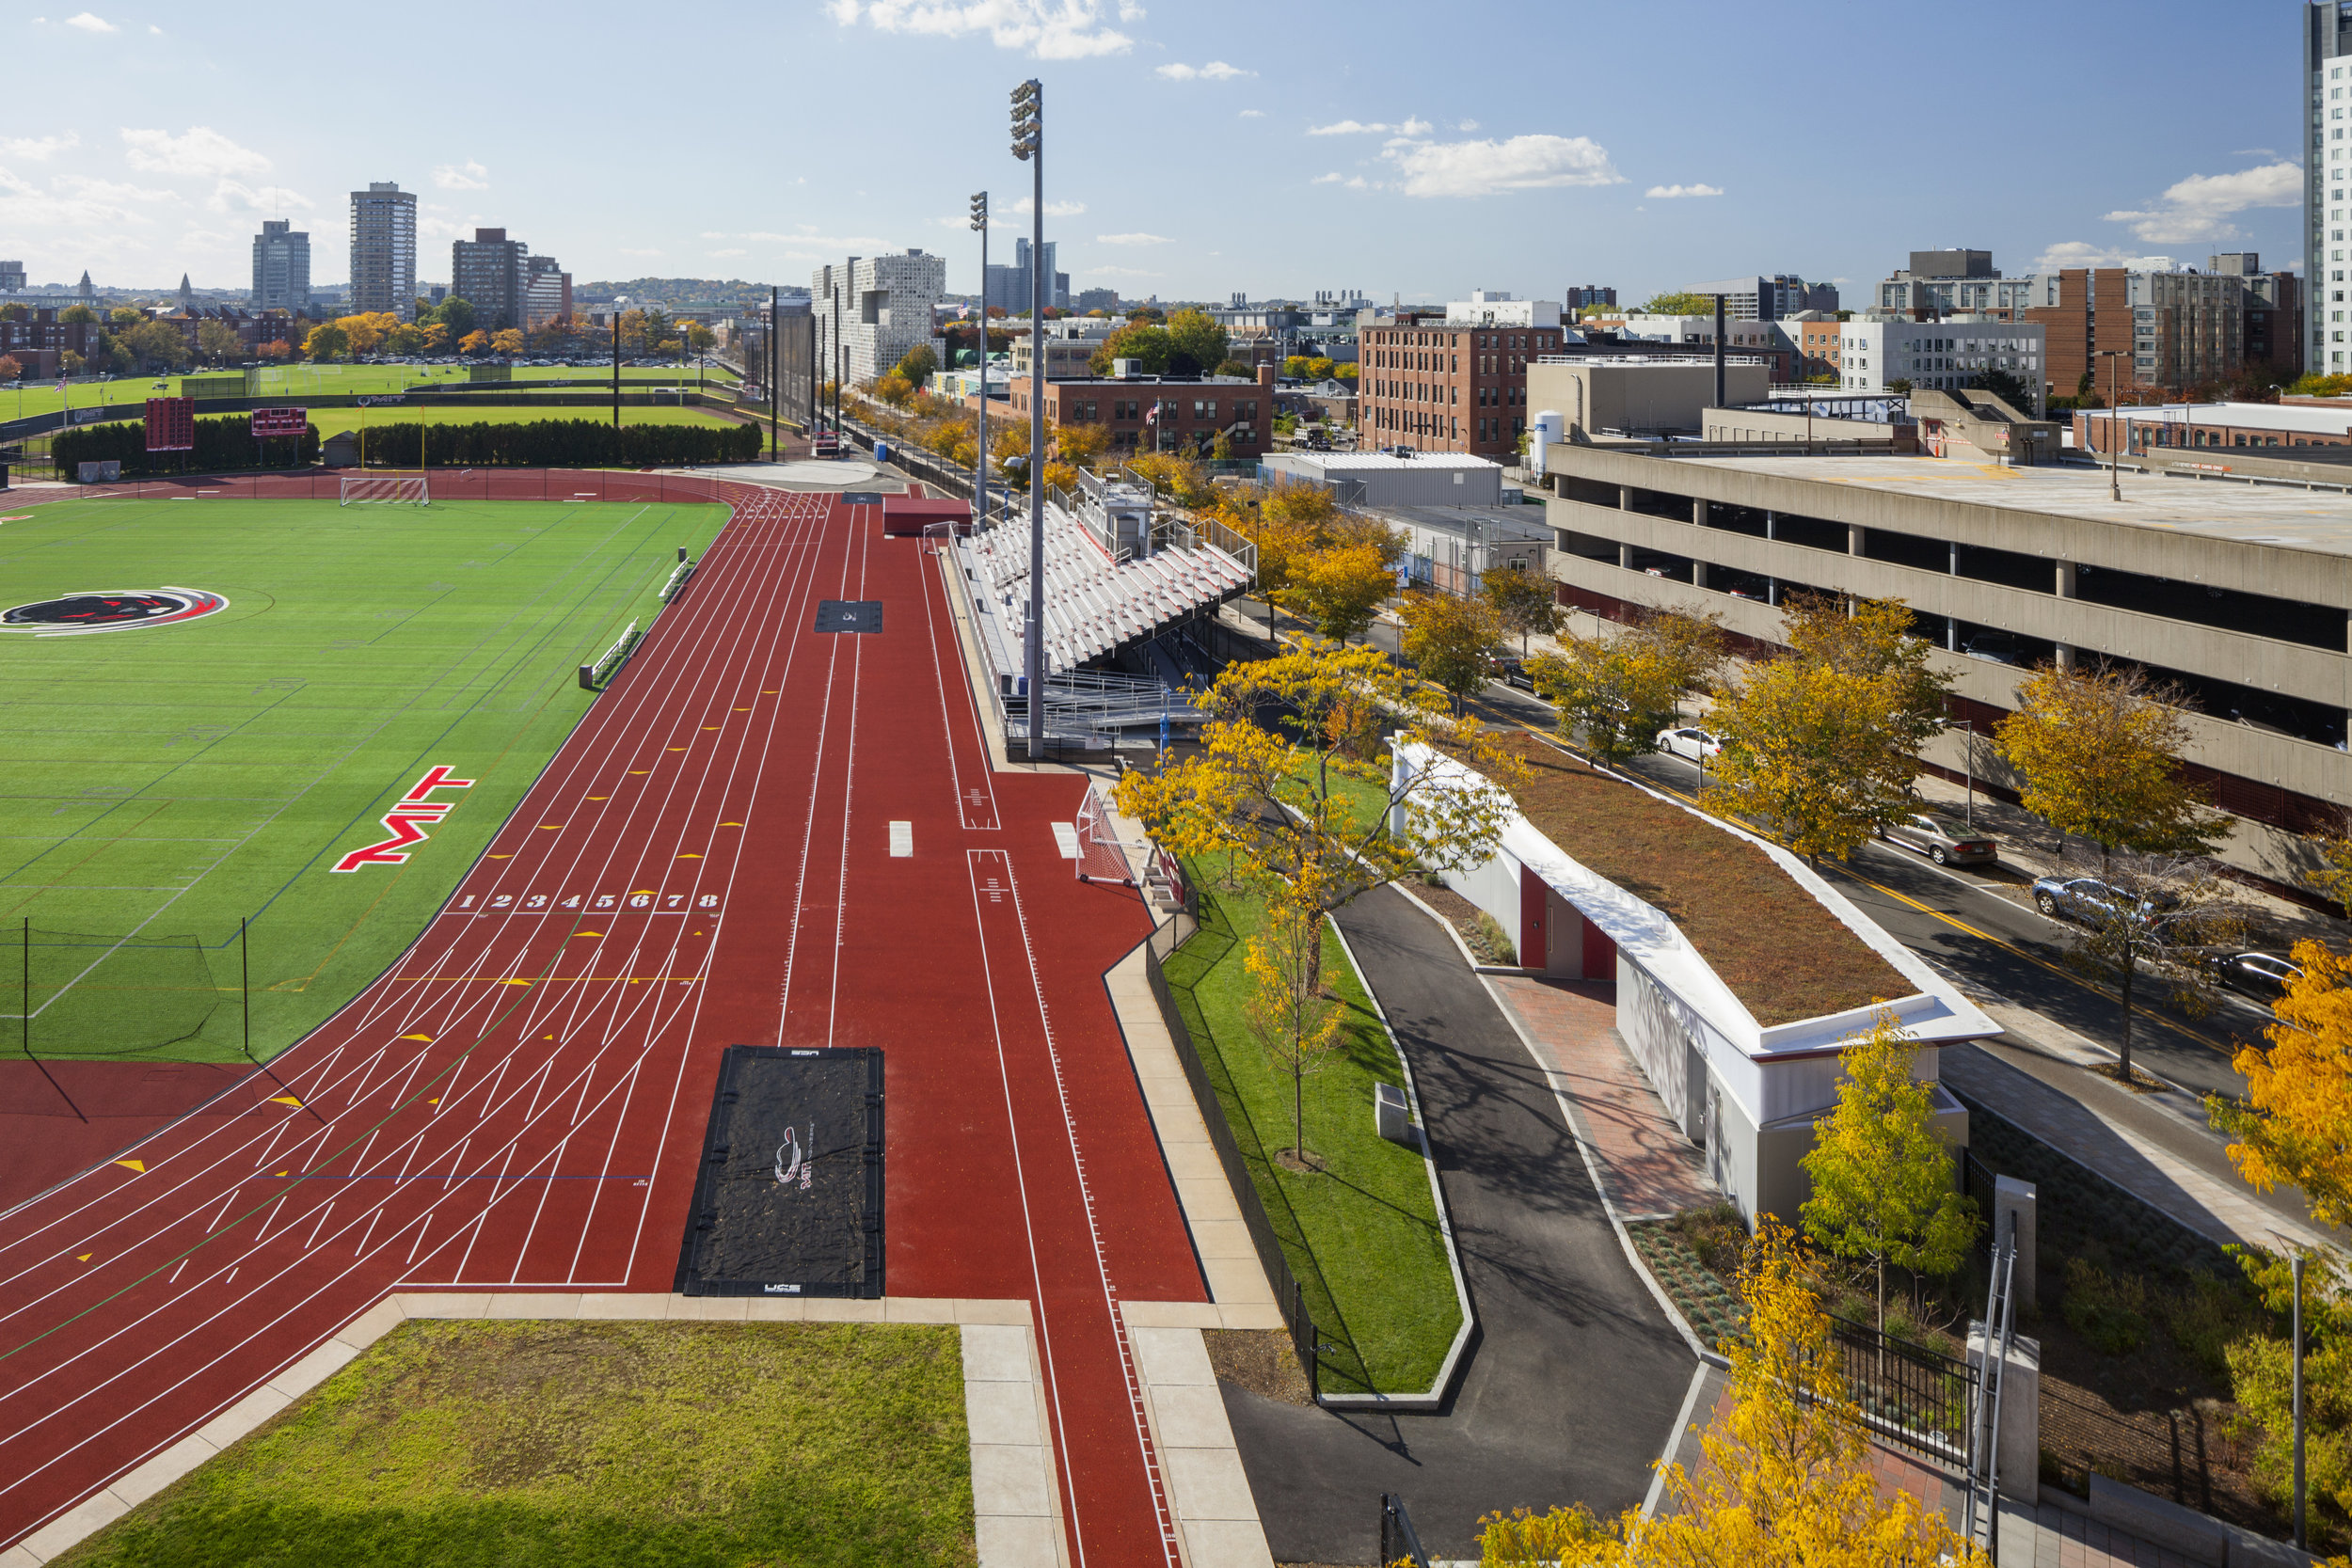 MIT Vassar Street Athletic Complex, Cambridge MA - Activitas